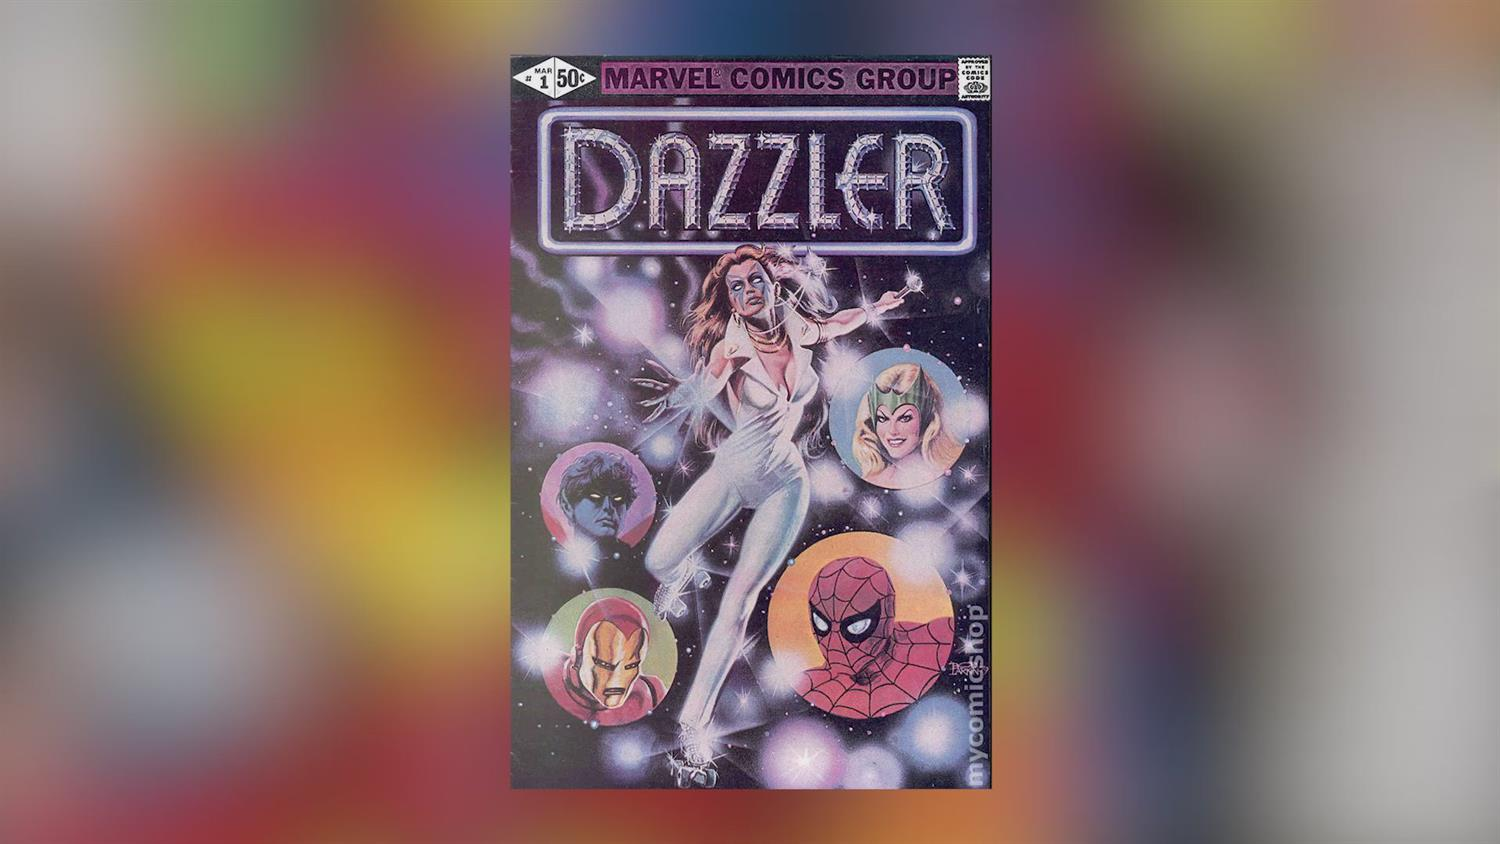 X-Men's Dazzler: The Origin Story You Didn't Know